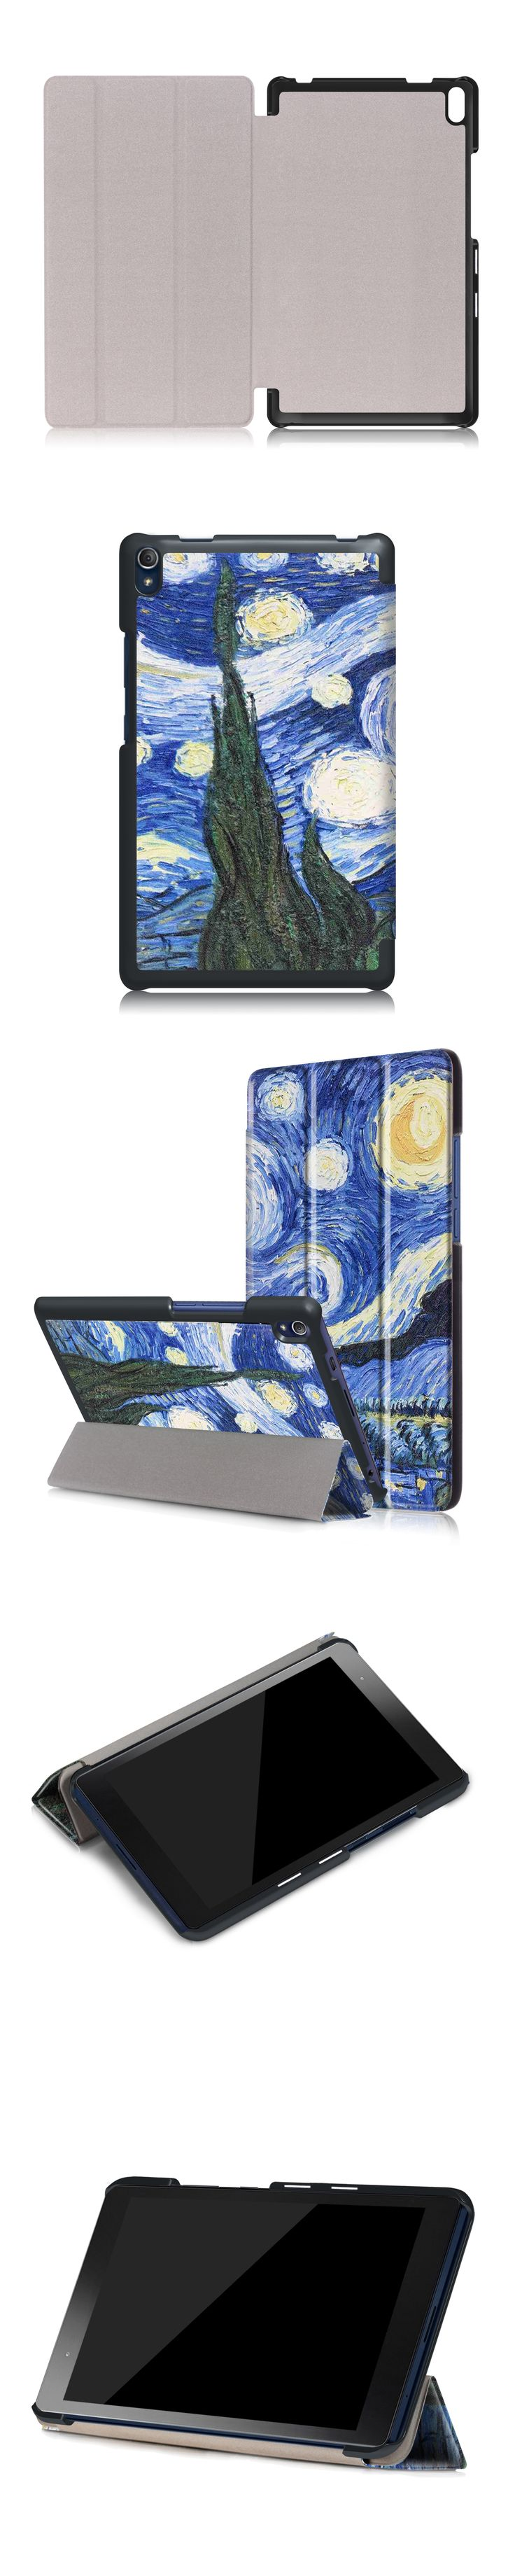 PU Leather Protective Case for Lenovo Tab3 8 Plus TB 8703F 8 inch